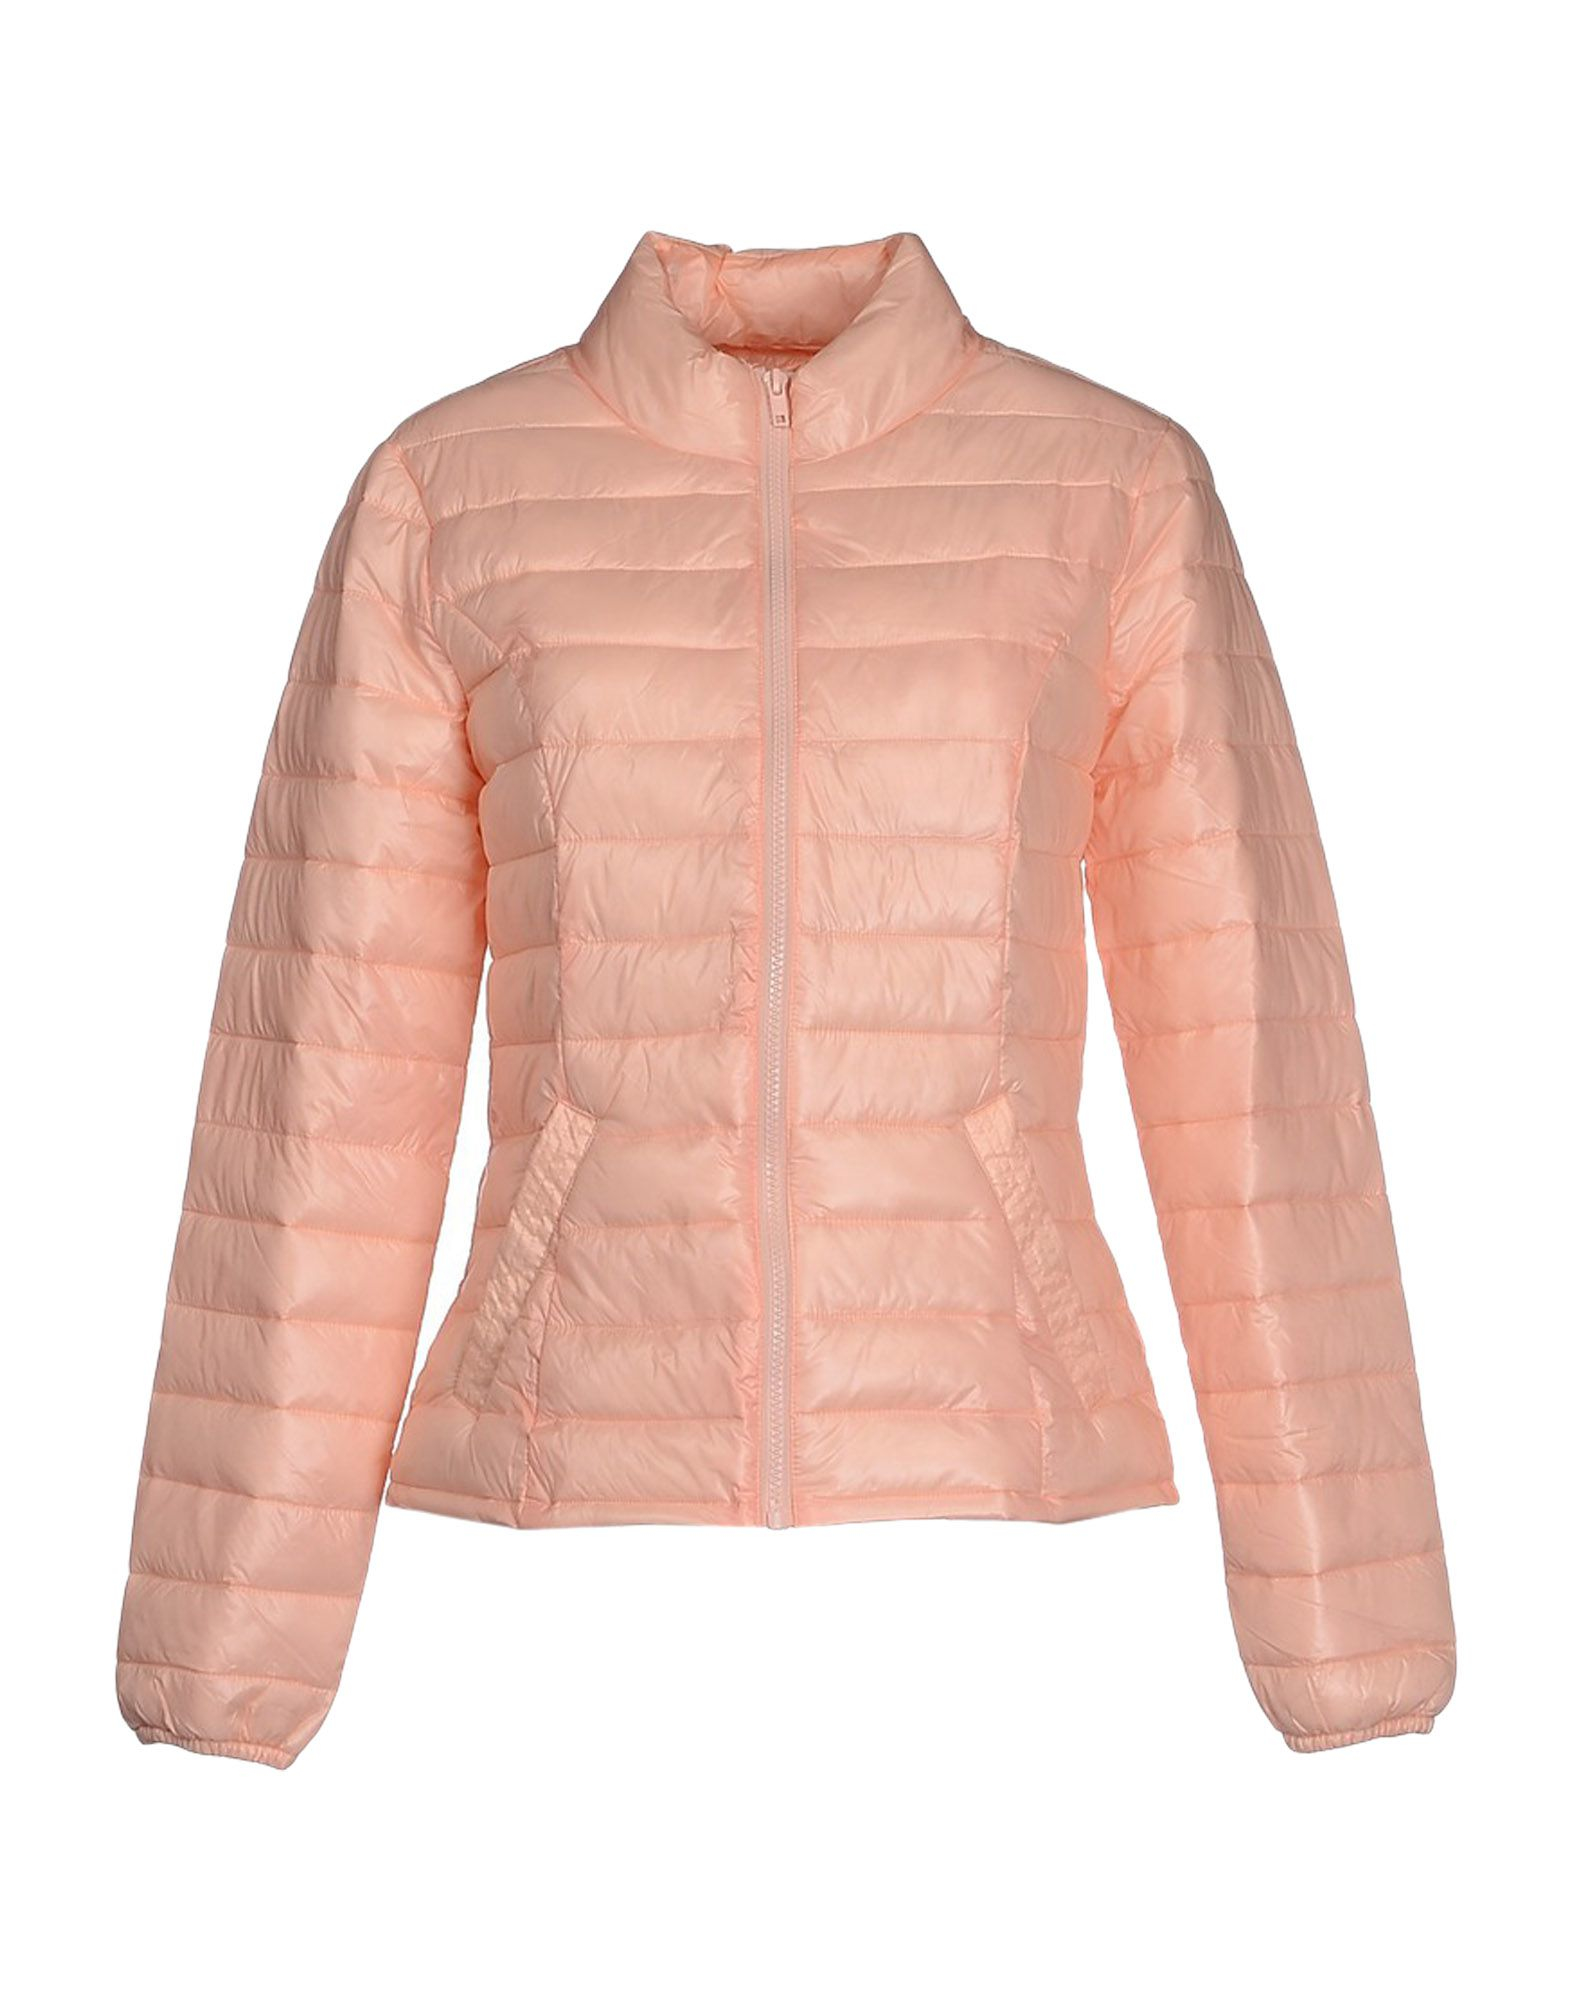 vero moda jacket in pink light pink lyst. Black Bedroom Furniture Sets. Home Design Ideas